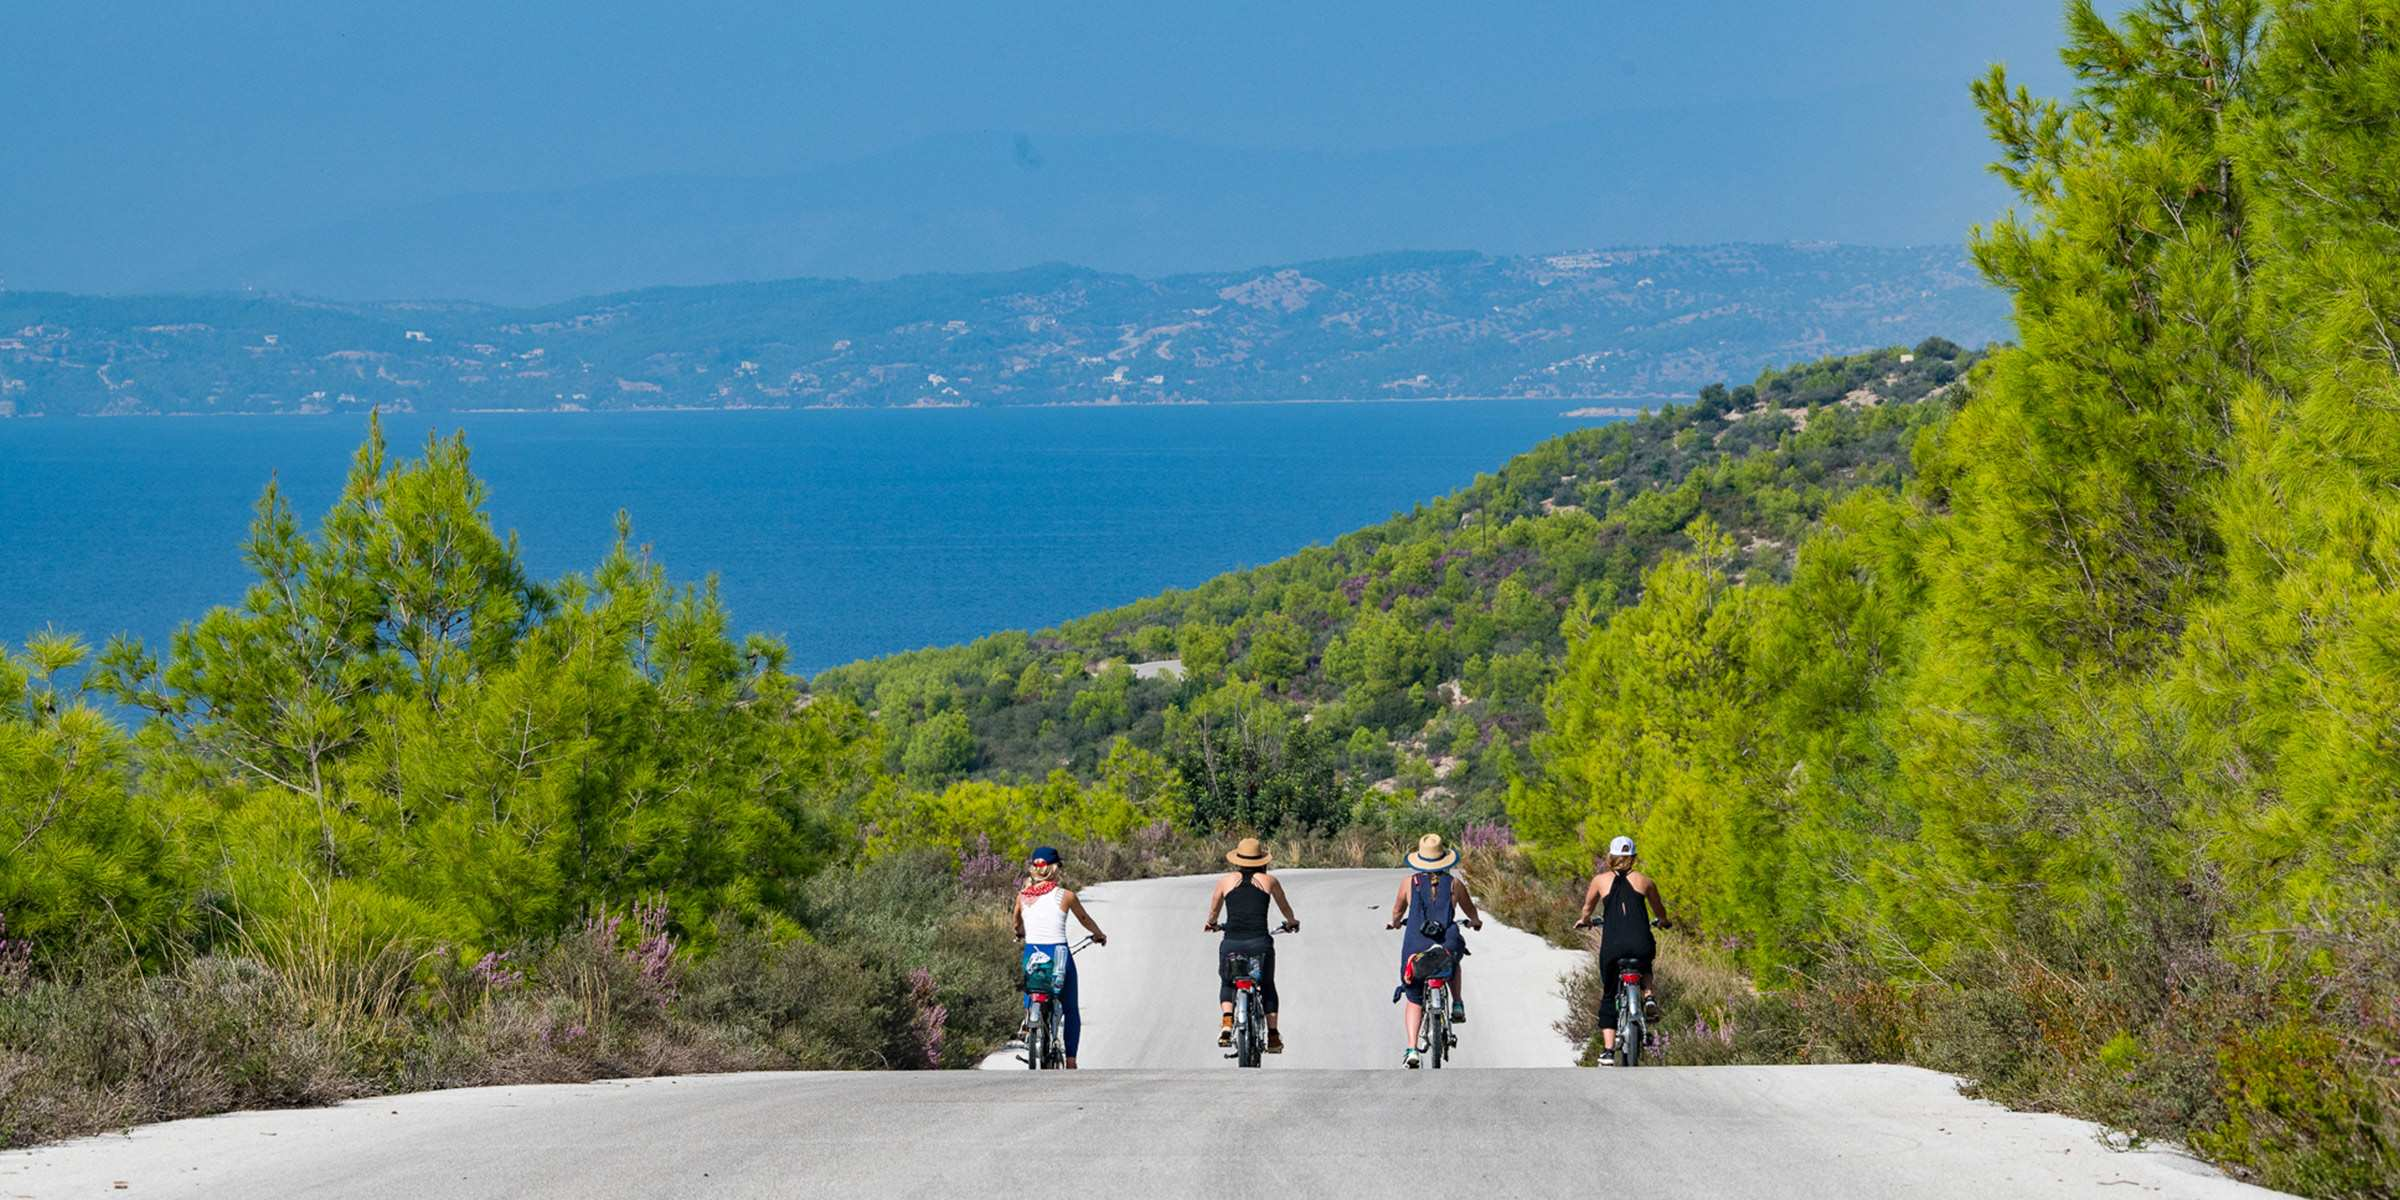 Biking in Spetses